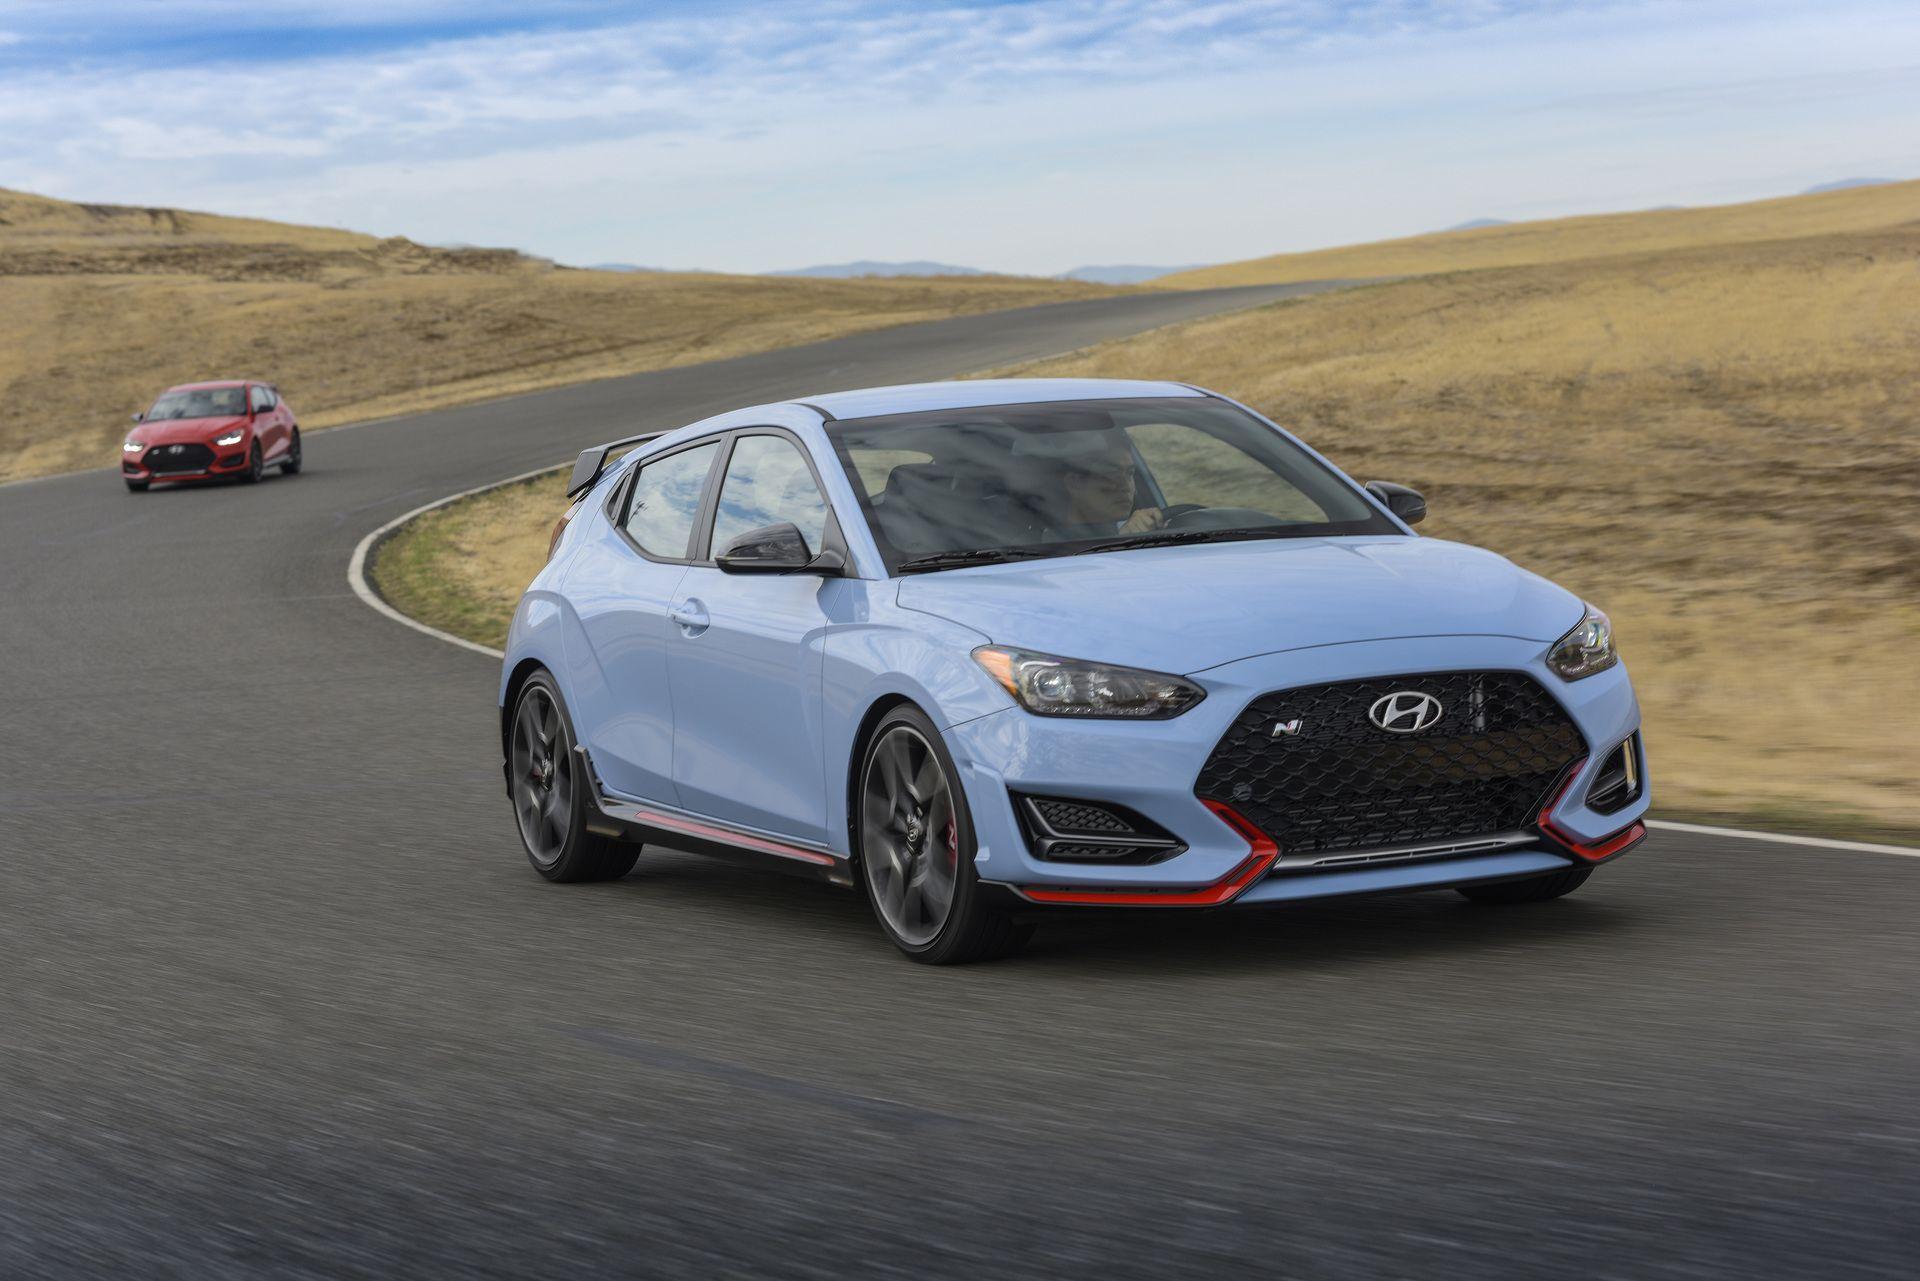 2020 Hyundai Veloster N 20 scaled